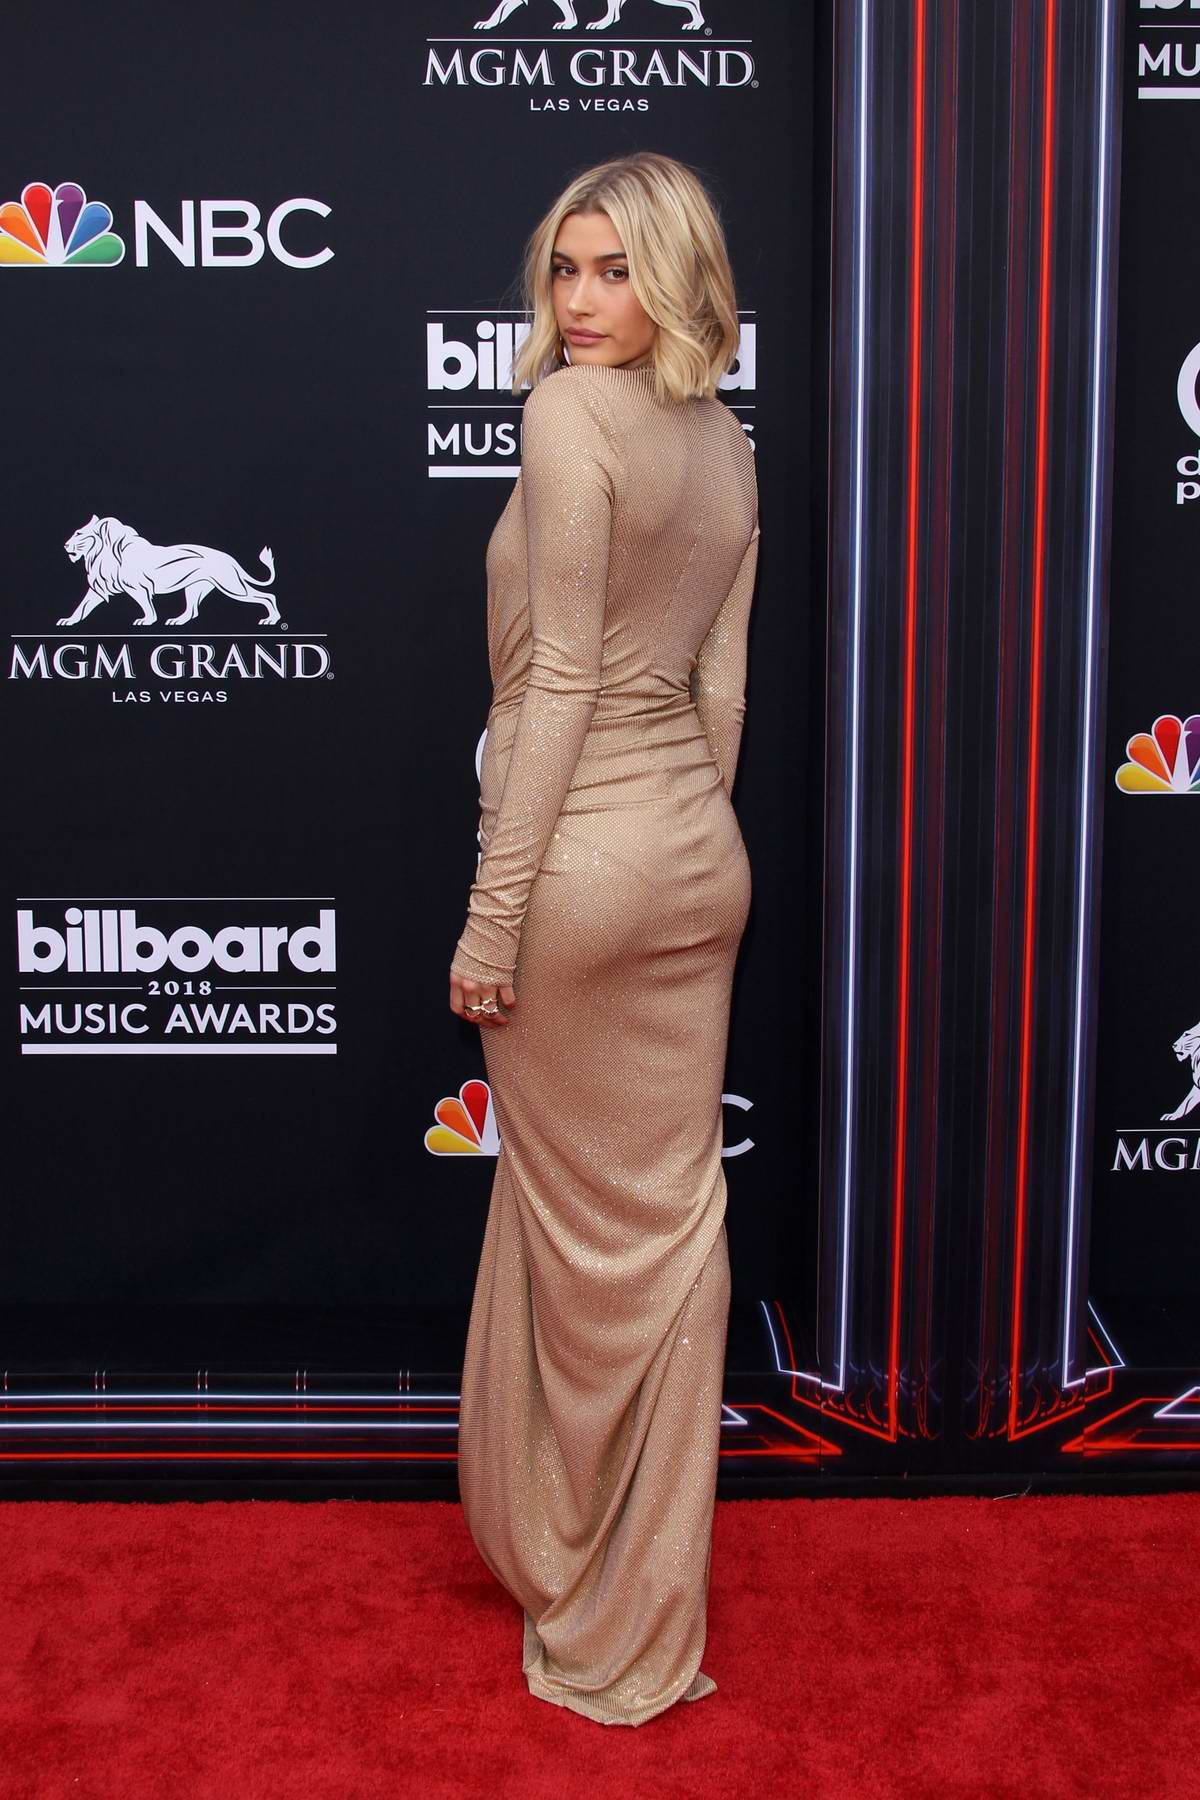 Hailey Baldwin attends the 2018 Billboard Music Awards at MGM Grand Garden in Las Vegas, Nevada